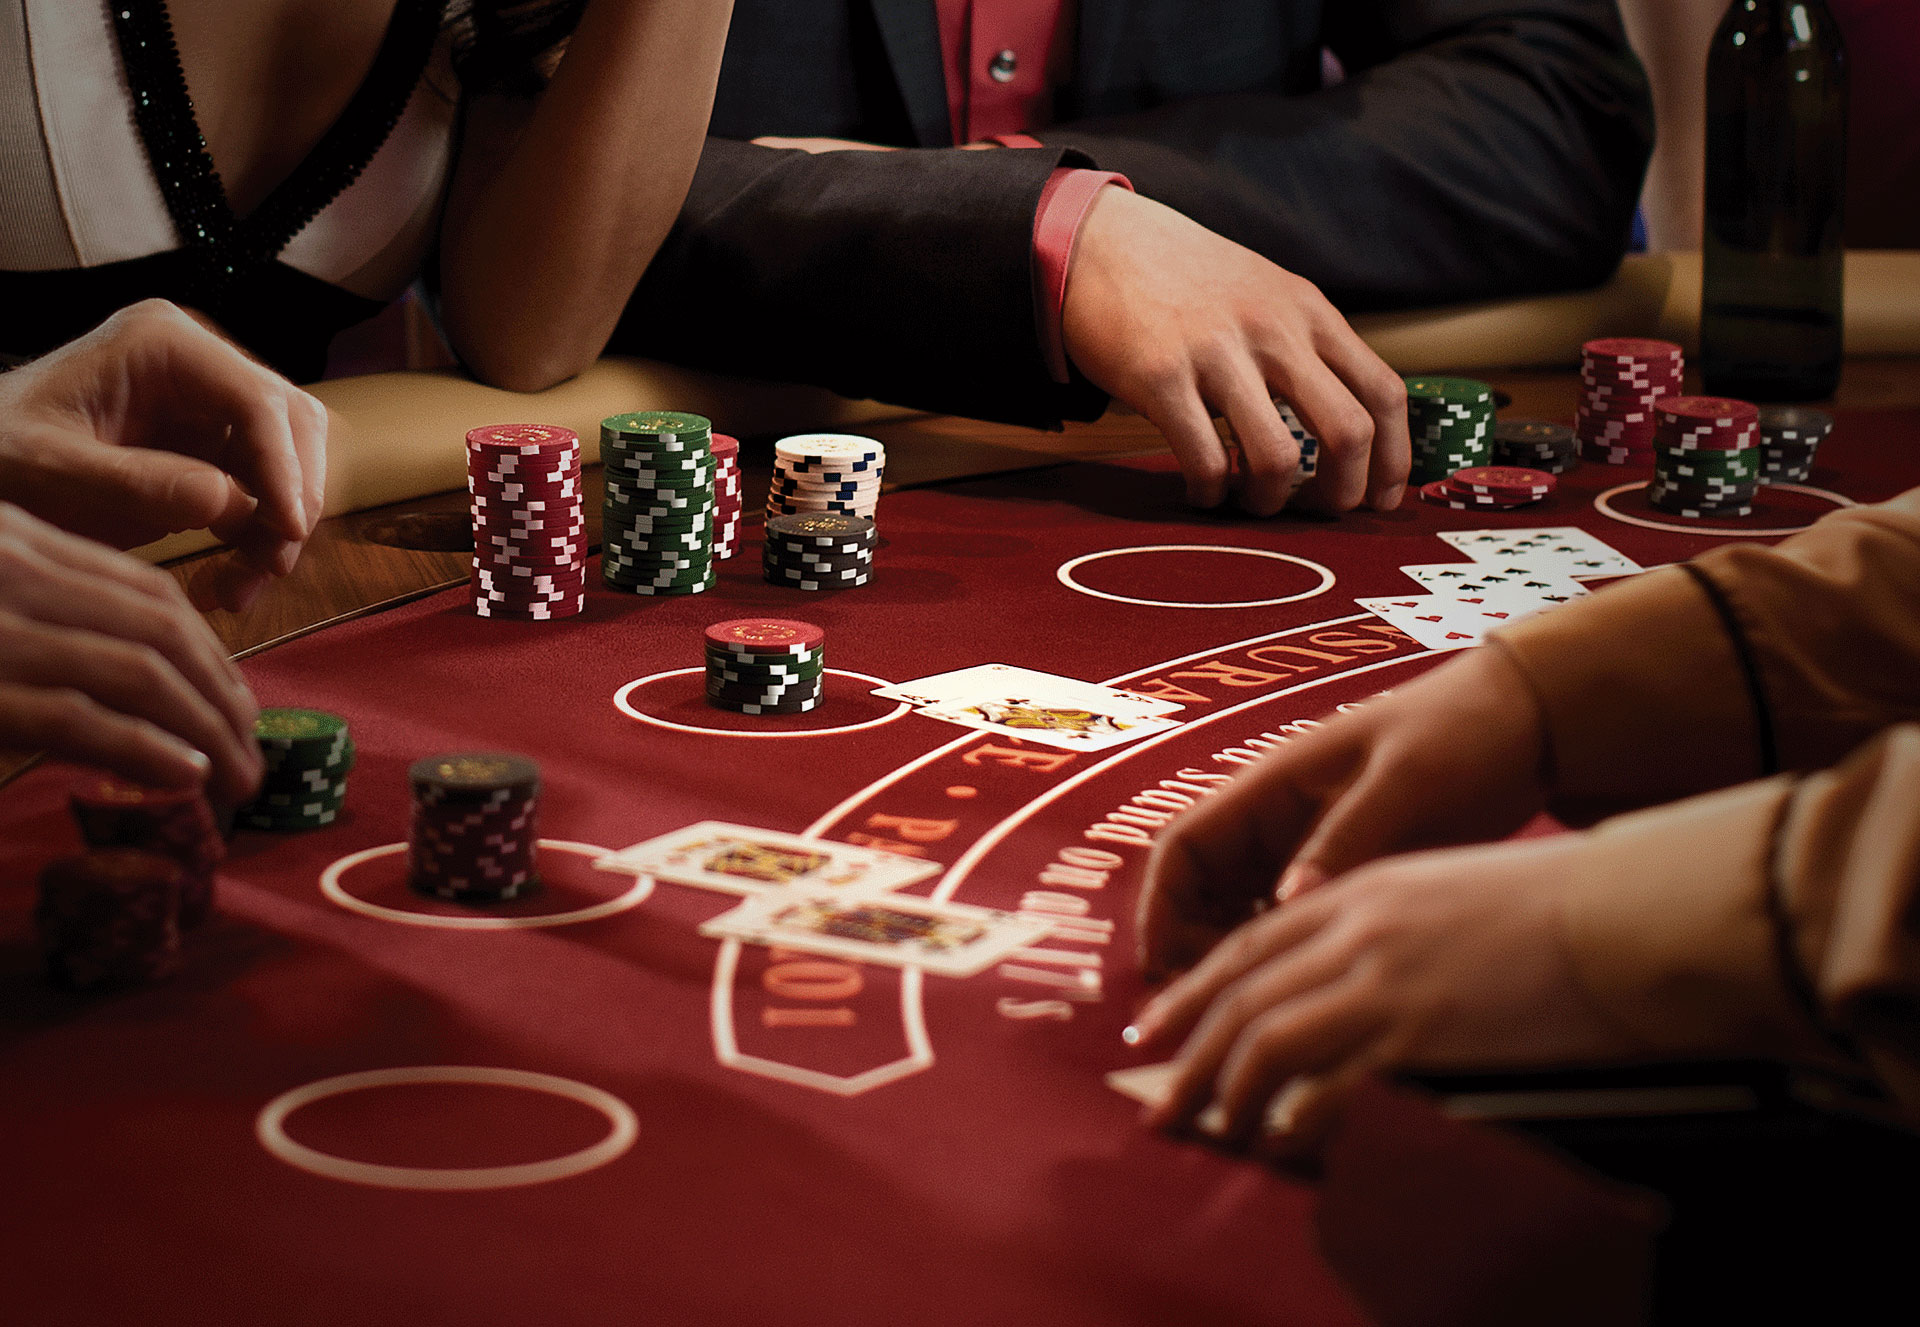 Online gambling sites are attracting investors as well as new players